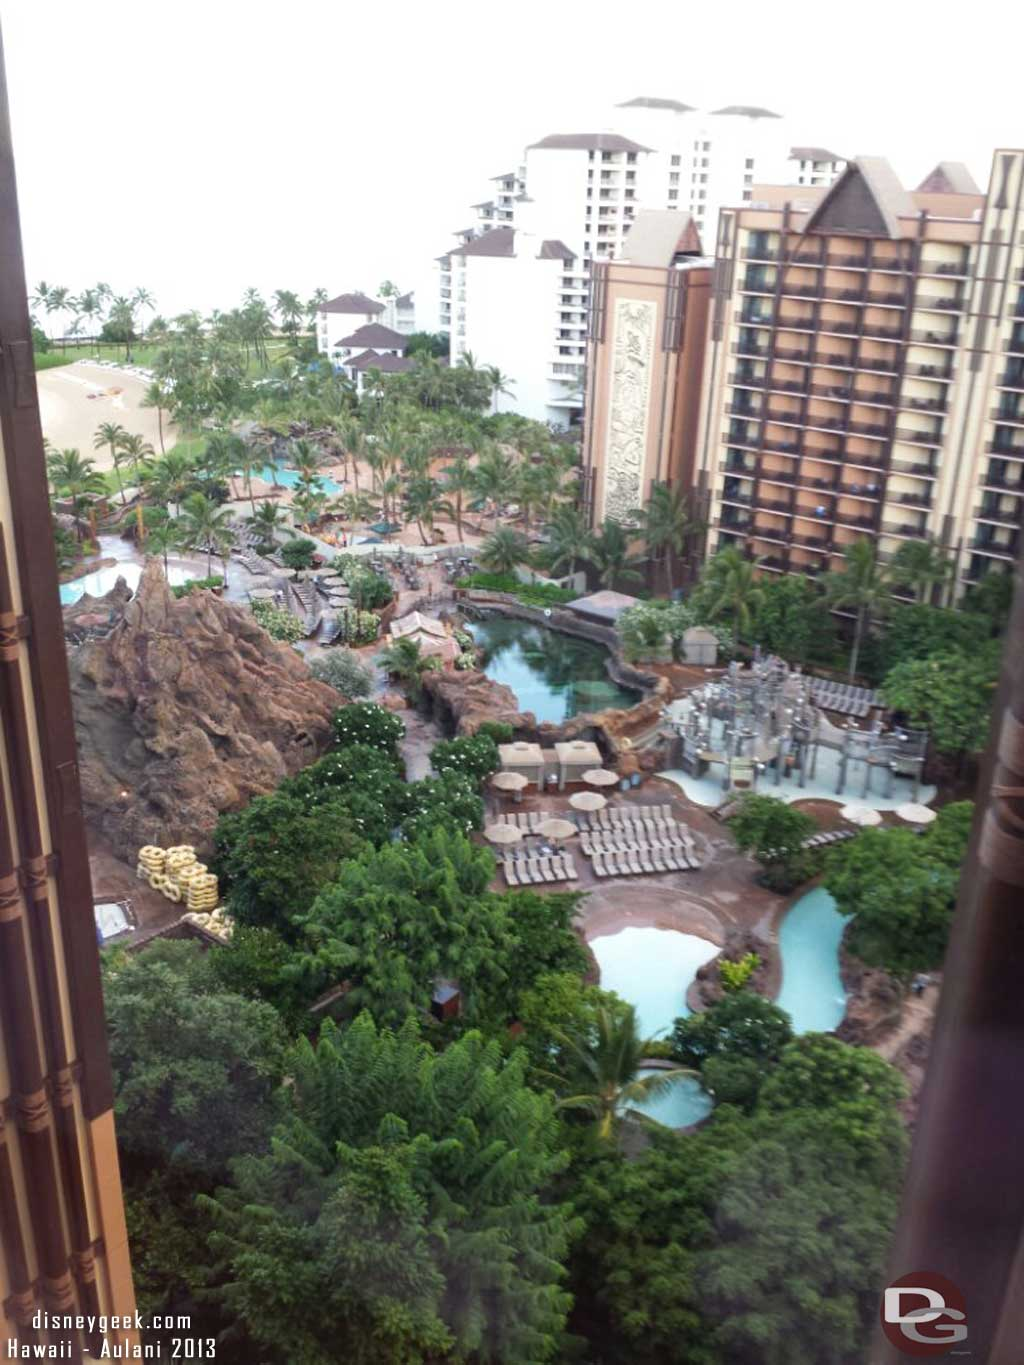 Looking down from the Ewa tower #Aulani